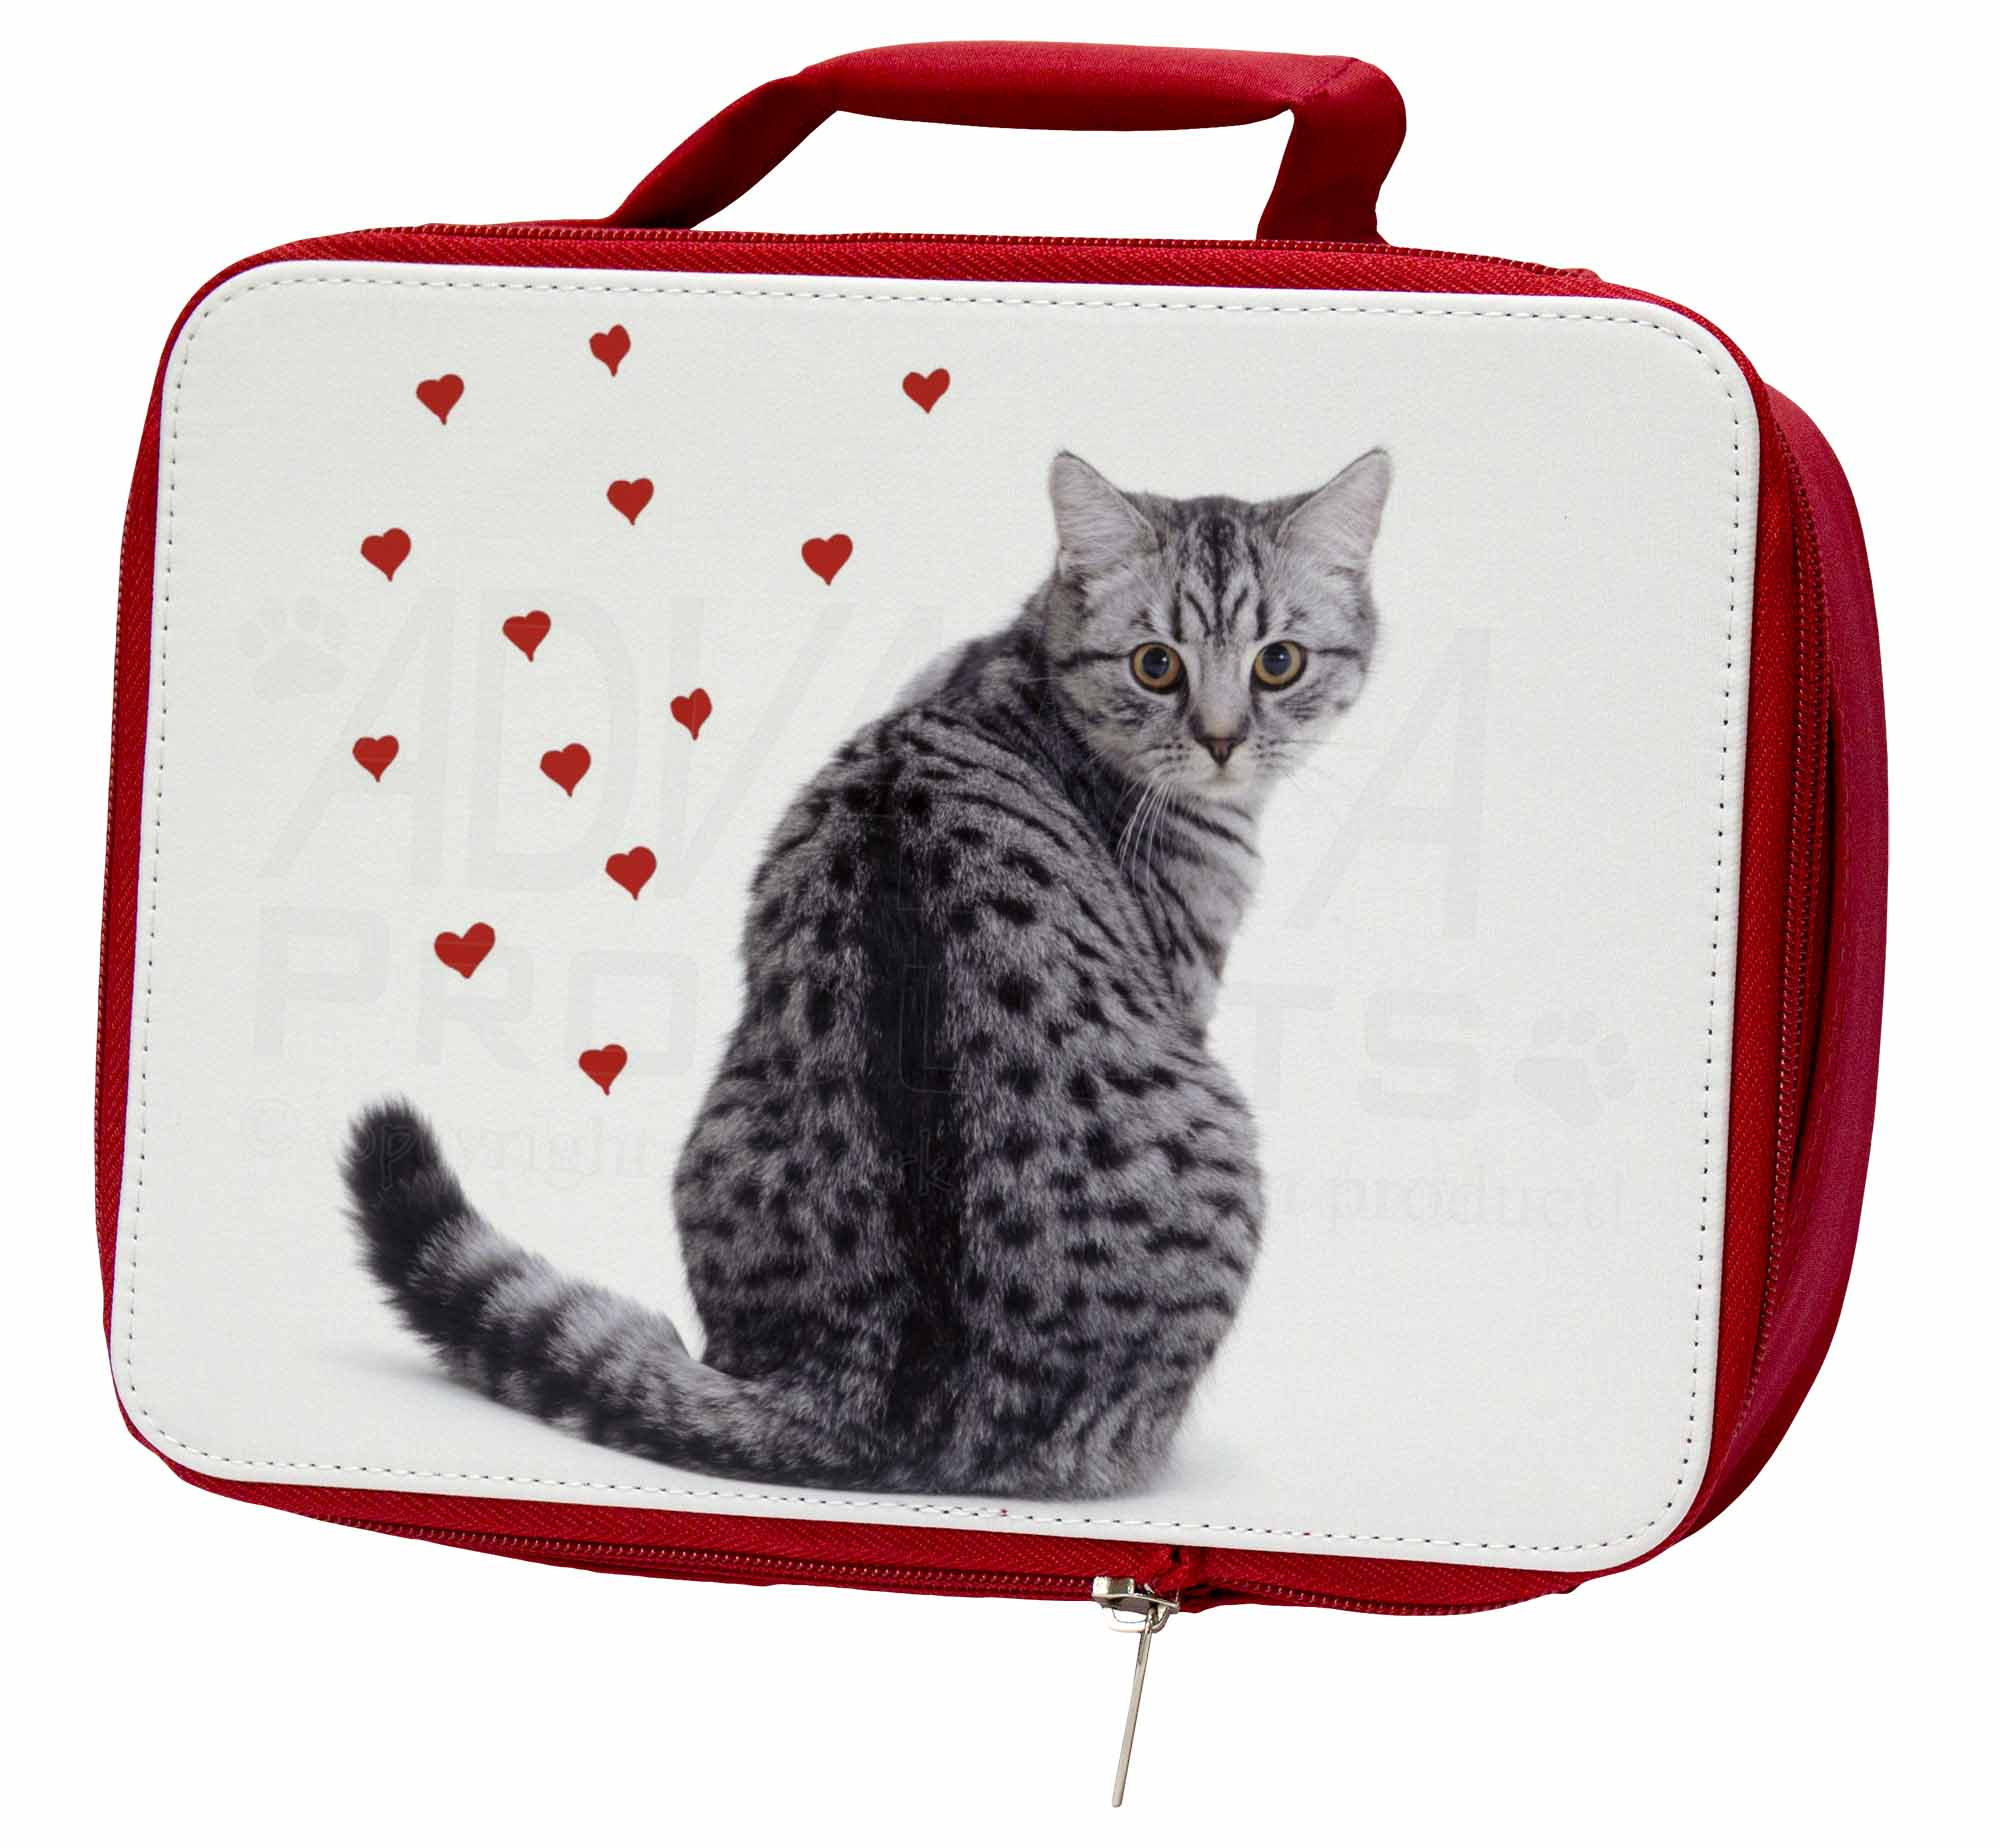 AC-140LBR Silver Tabby Cat with Red Hearts Insulated Red School Lunch Box//Picni